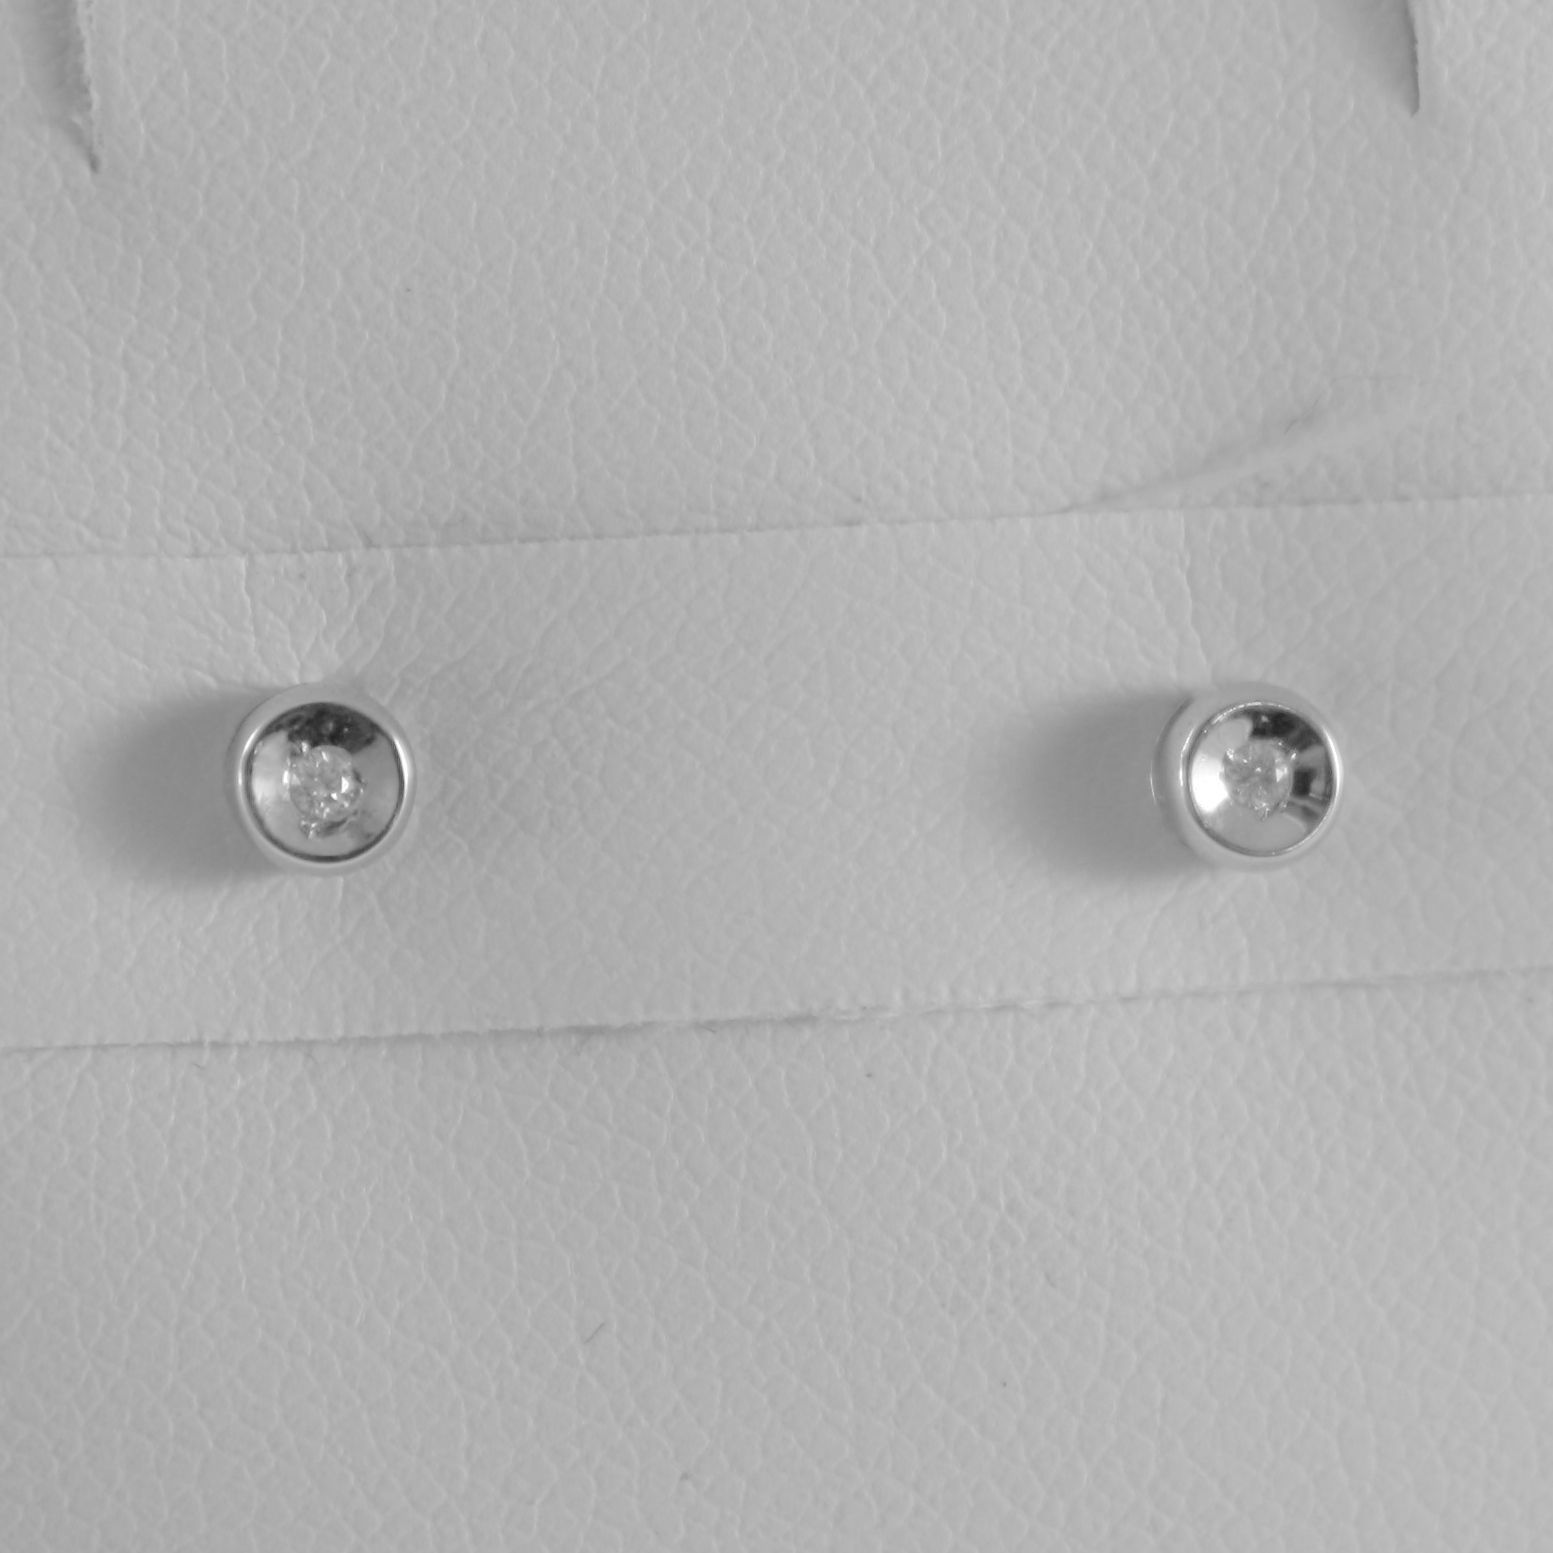 18K WHITE GOLD MINI ROUND EARRINGS DIAMOND DIAMONDS 0.04 CT, MADE IN ITALY